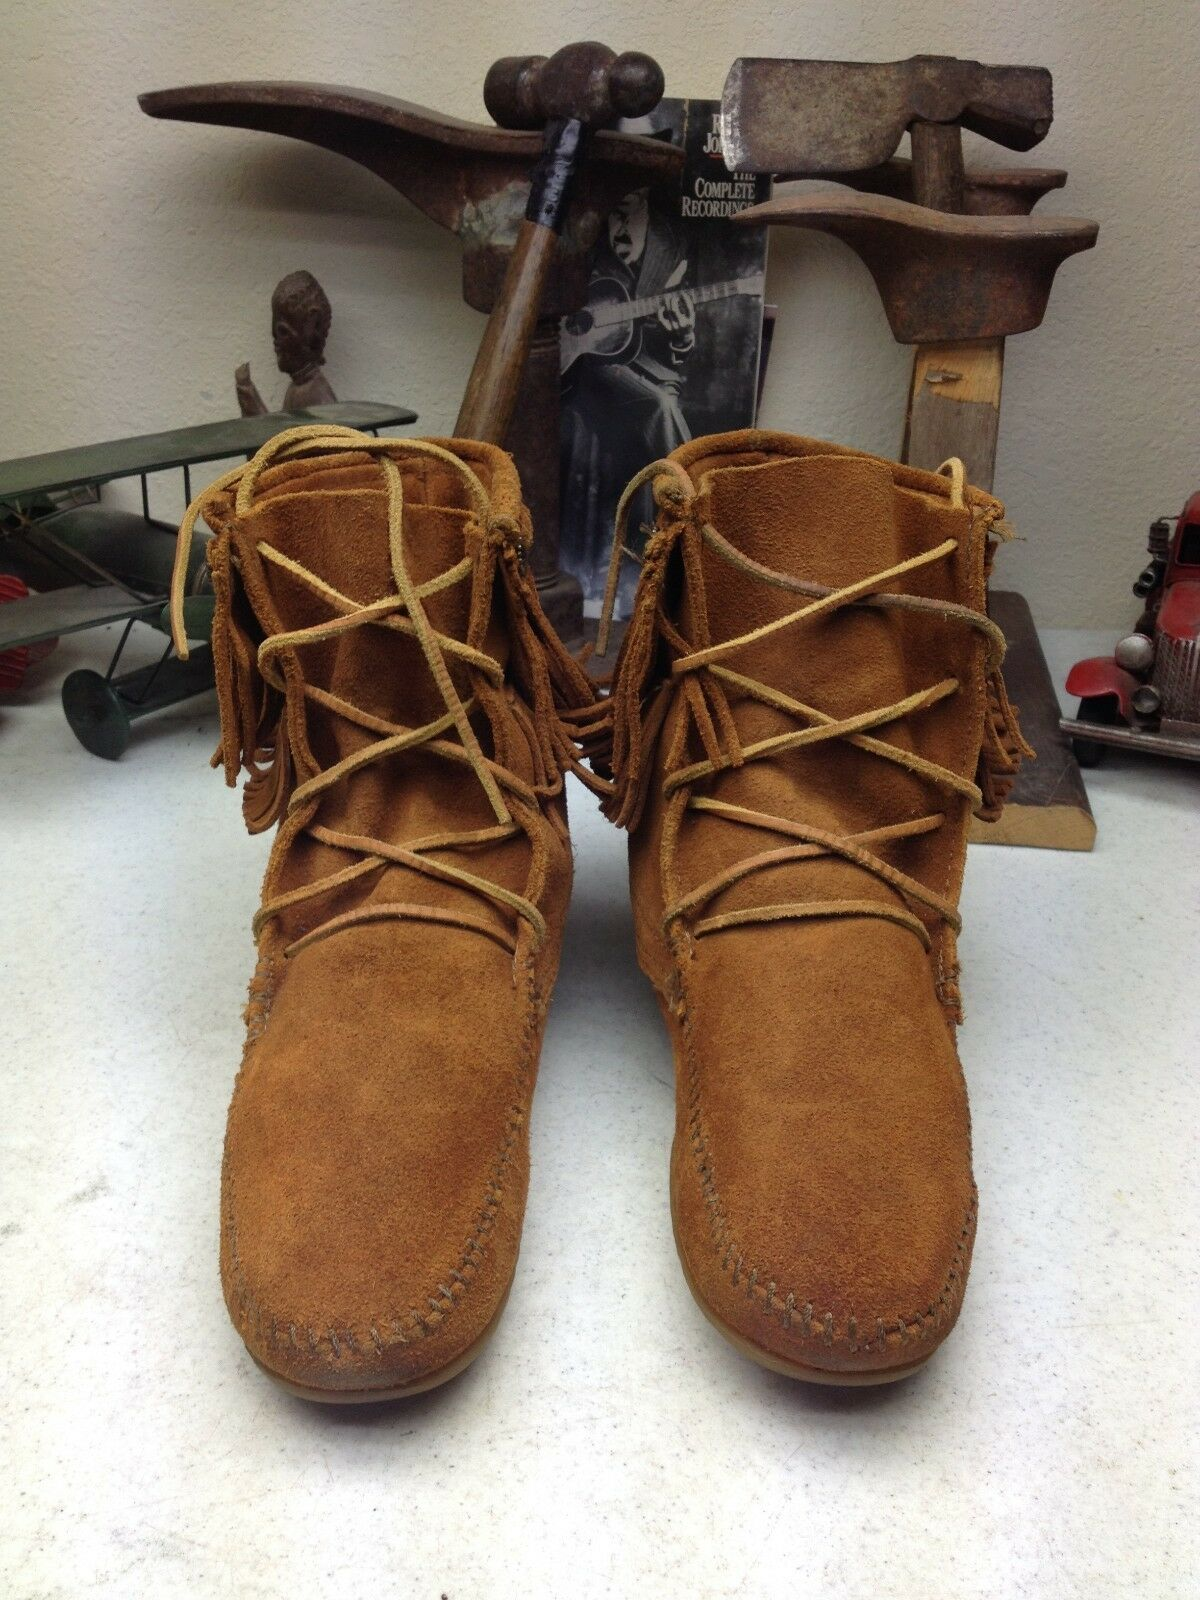 MINNETONKA MOCCASIN BROWN LEATHER 9 FRINGE HIPPIE WINTER WALKING BOOTS 9 LEATHER B cf9a3c